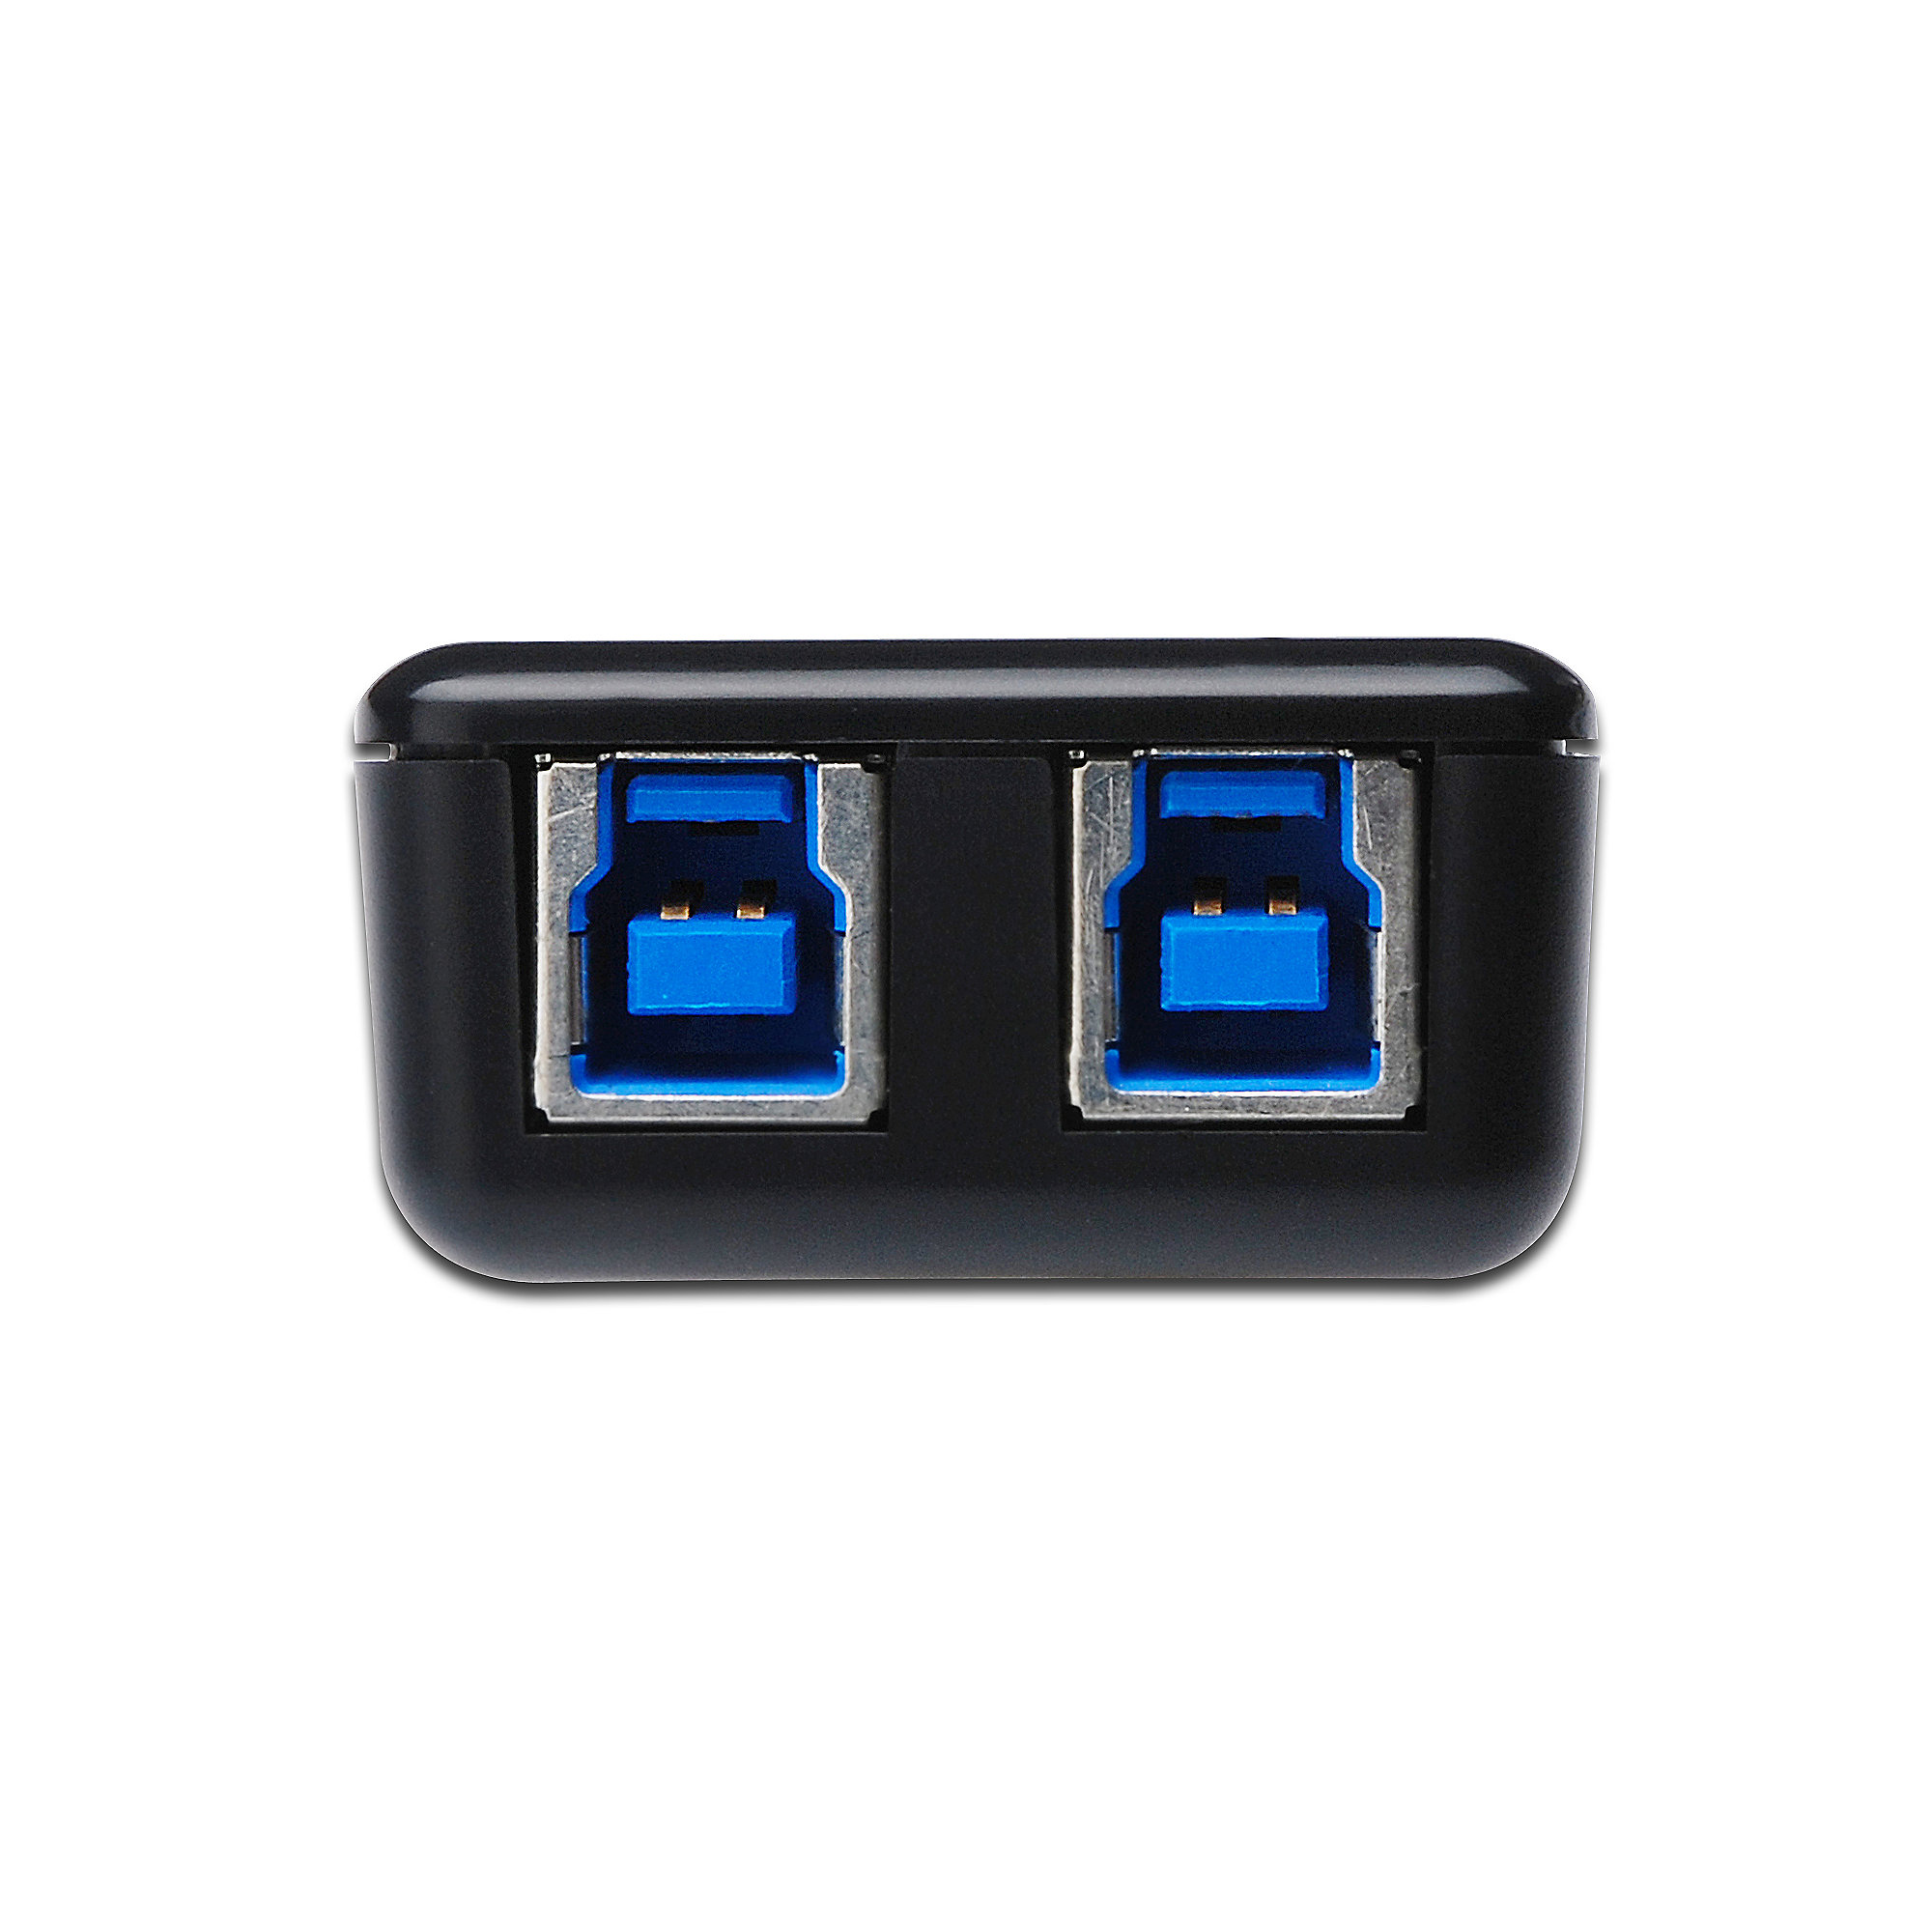 DIGITUS USB 3.0 Sharing Switch 2 PCs zu 1 Endgerät